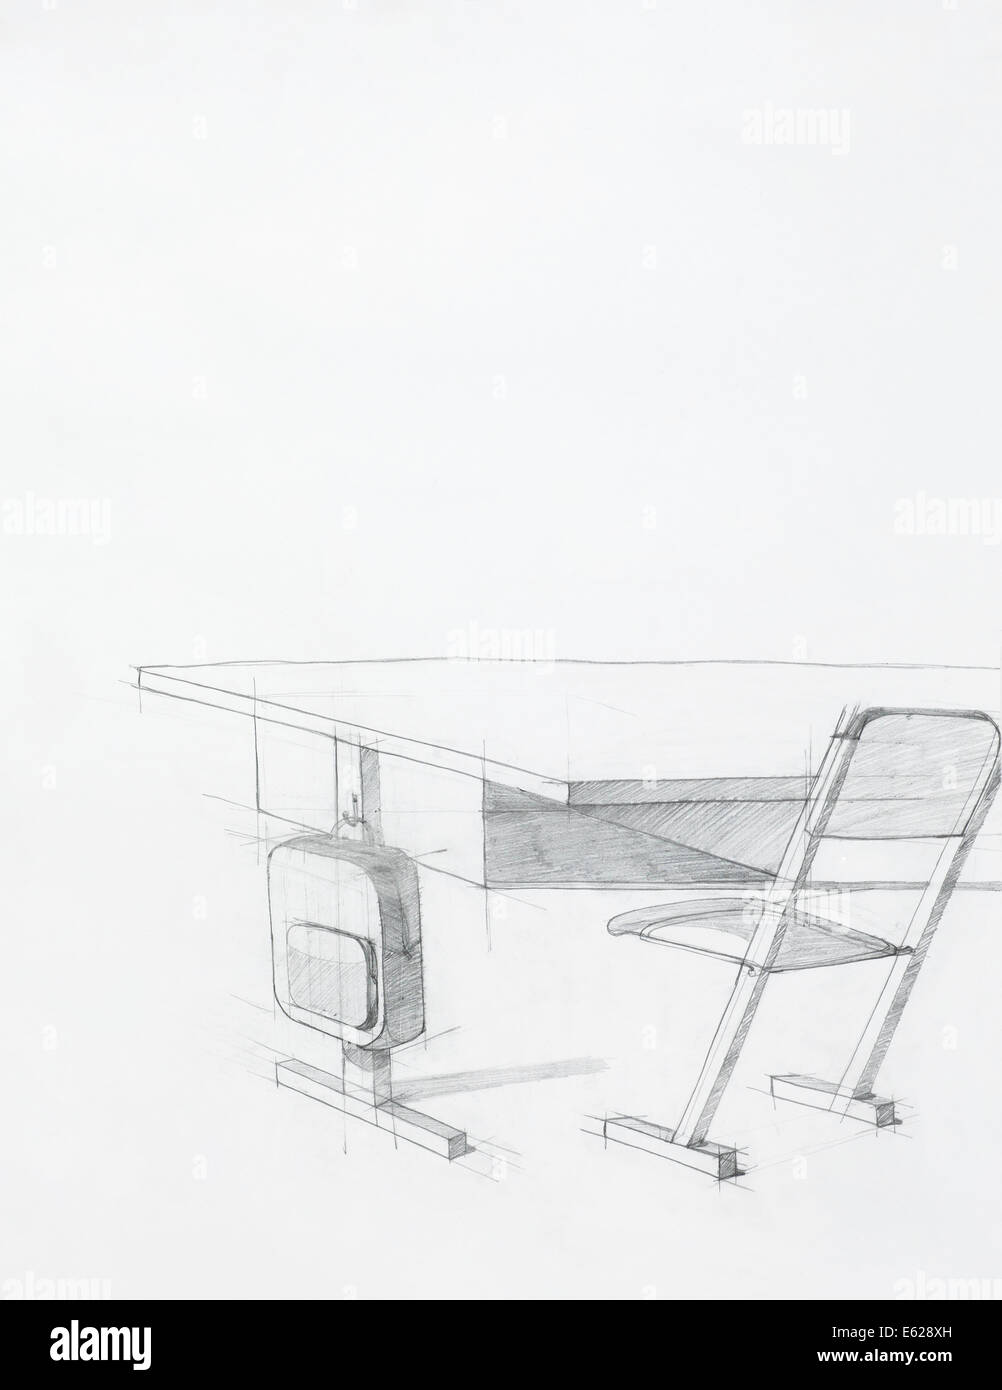 hand drawn sketch of school desk and chair, artistic study Stock